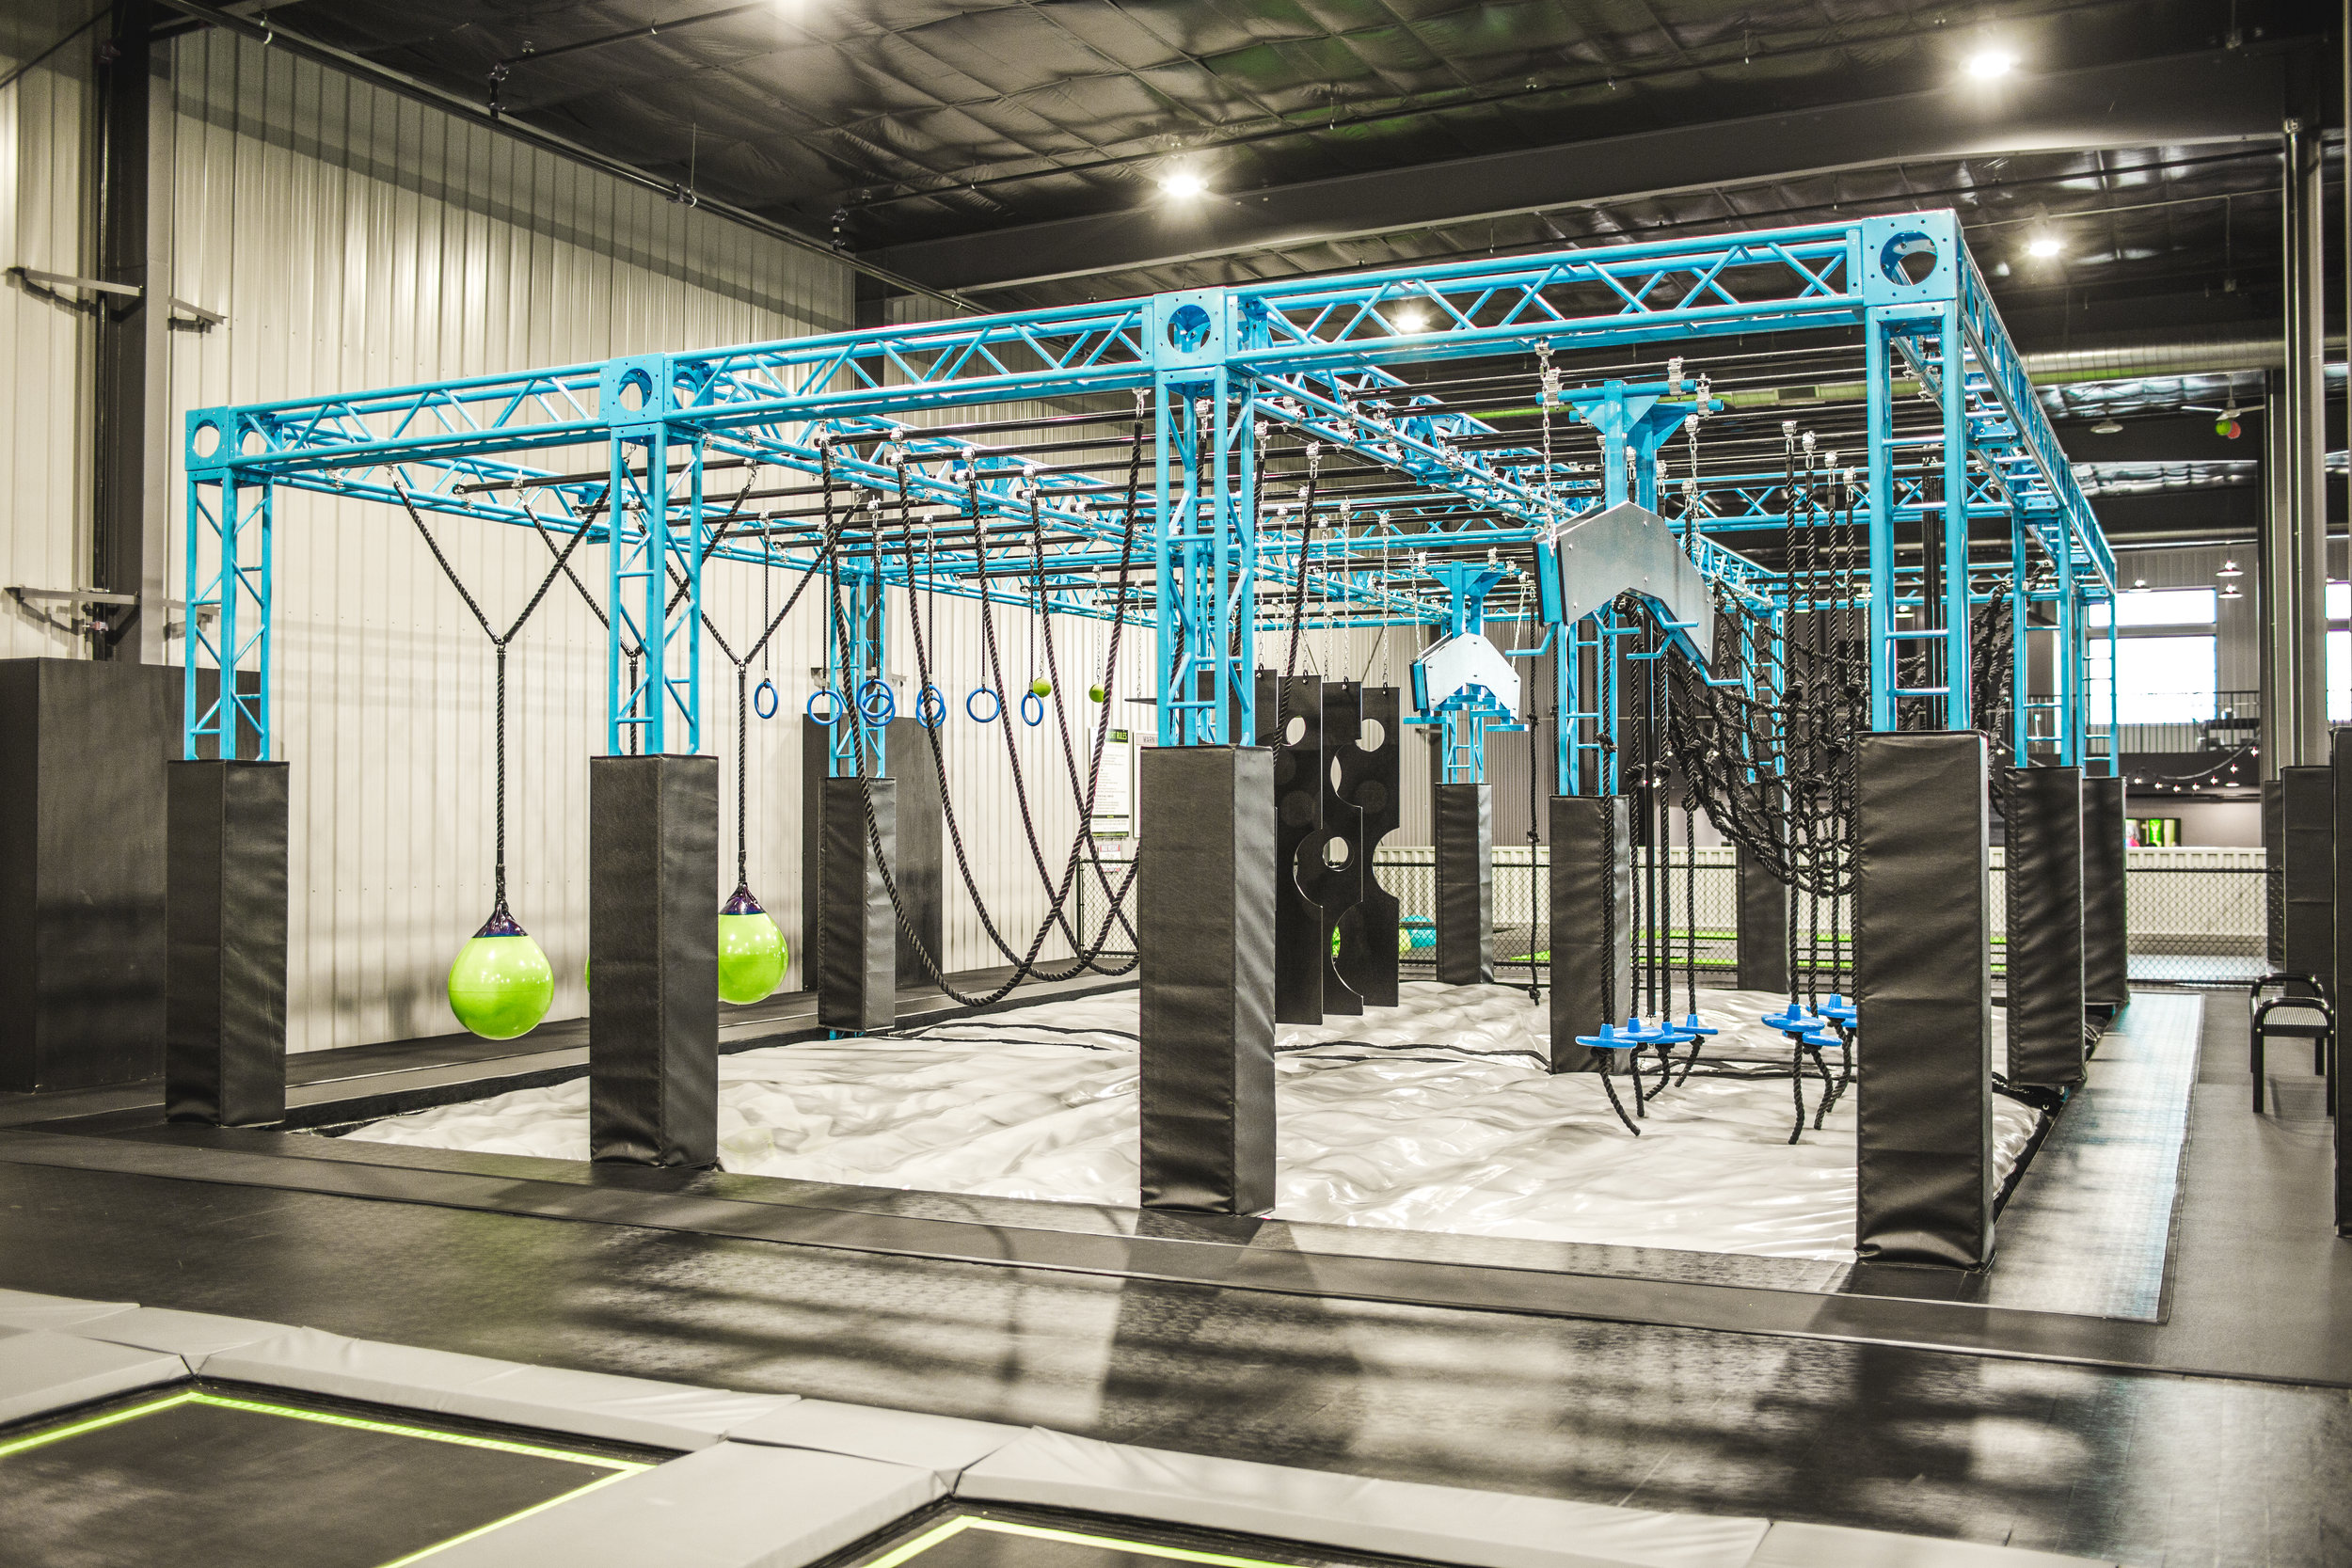 NINJA WARRIOR COURSE - Put your Ninja skills to the test in this 3 lane ninja warrior course that features 12 challenging obstacles!